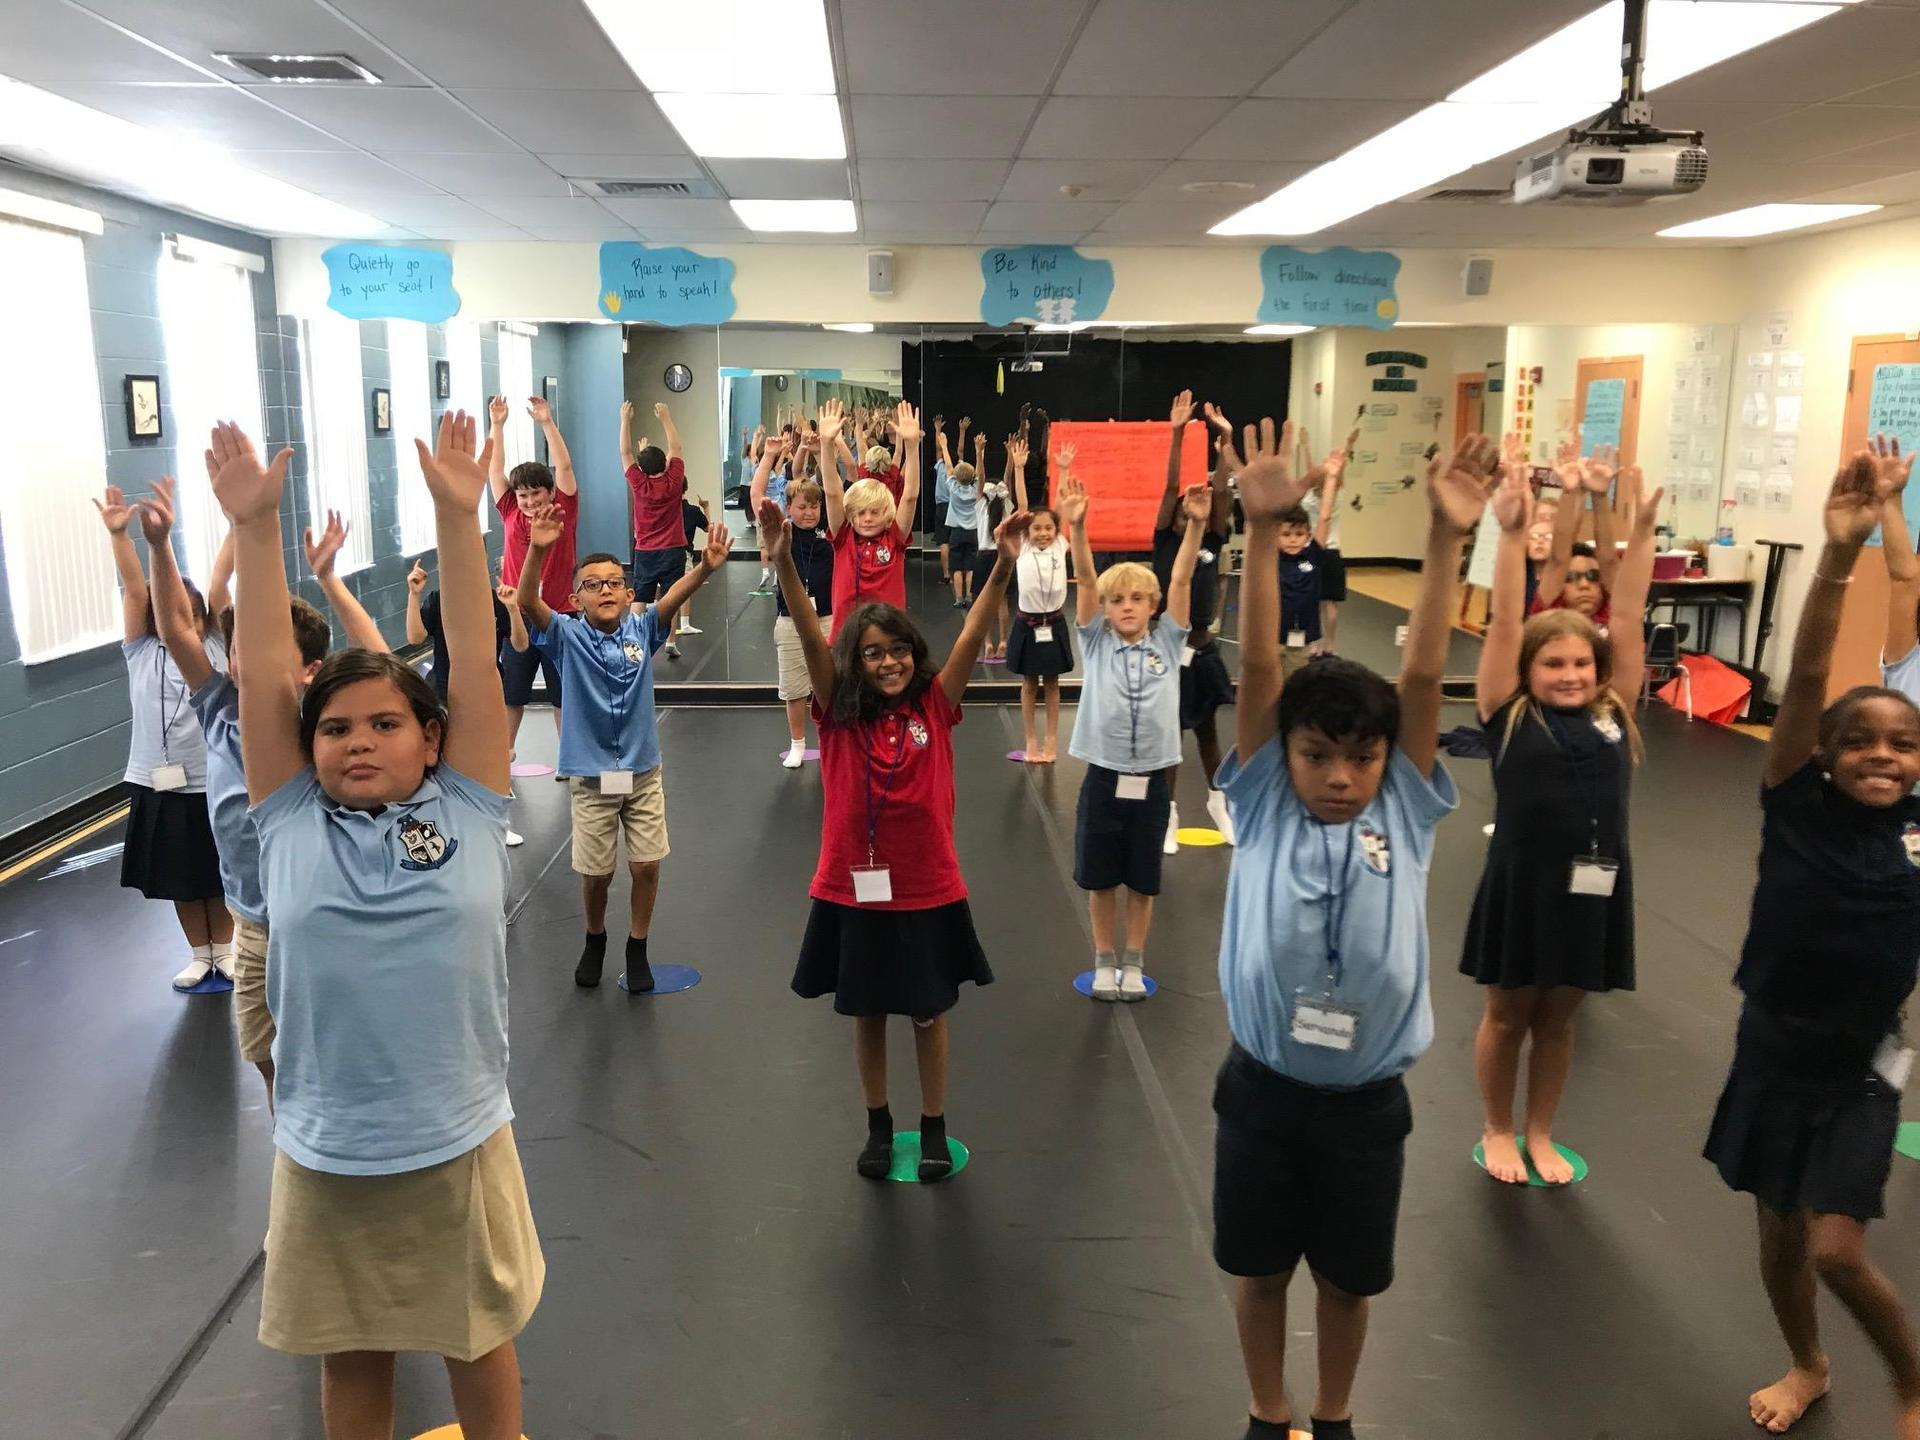 3rd graders stretching